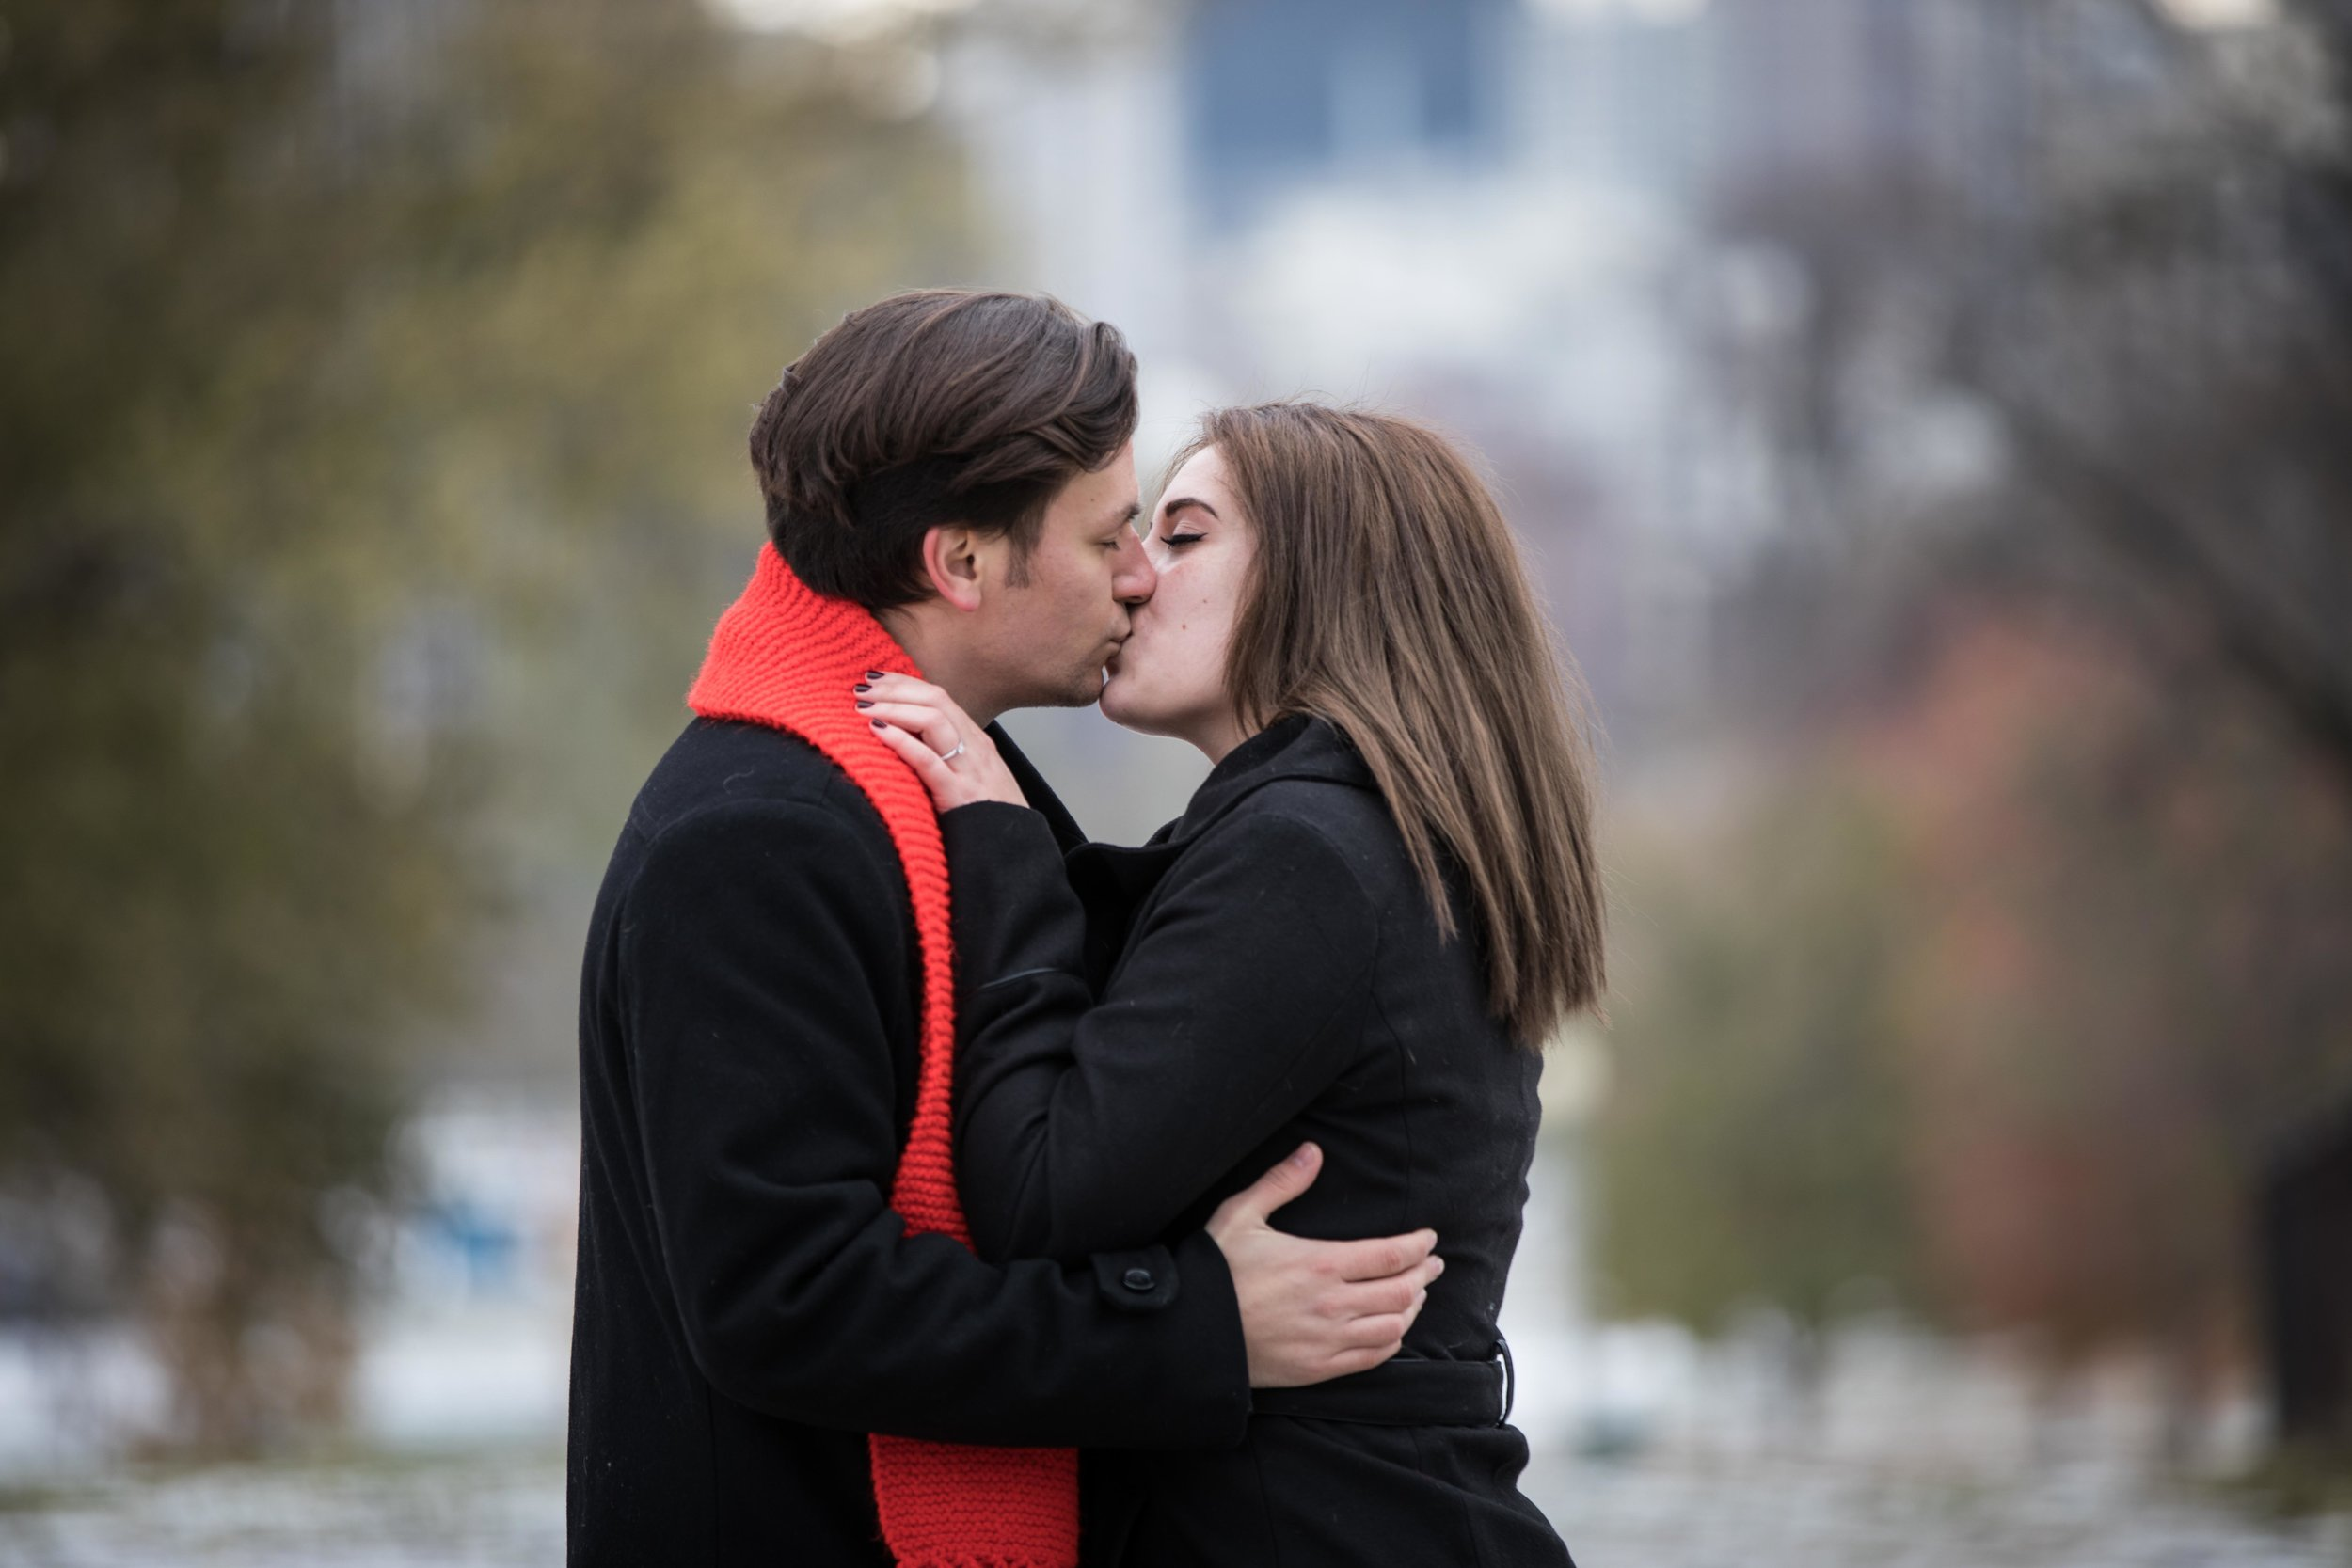 A Kiss in the City